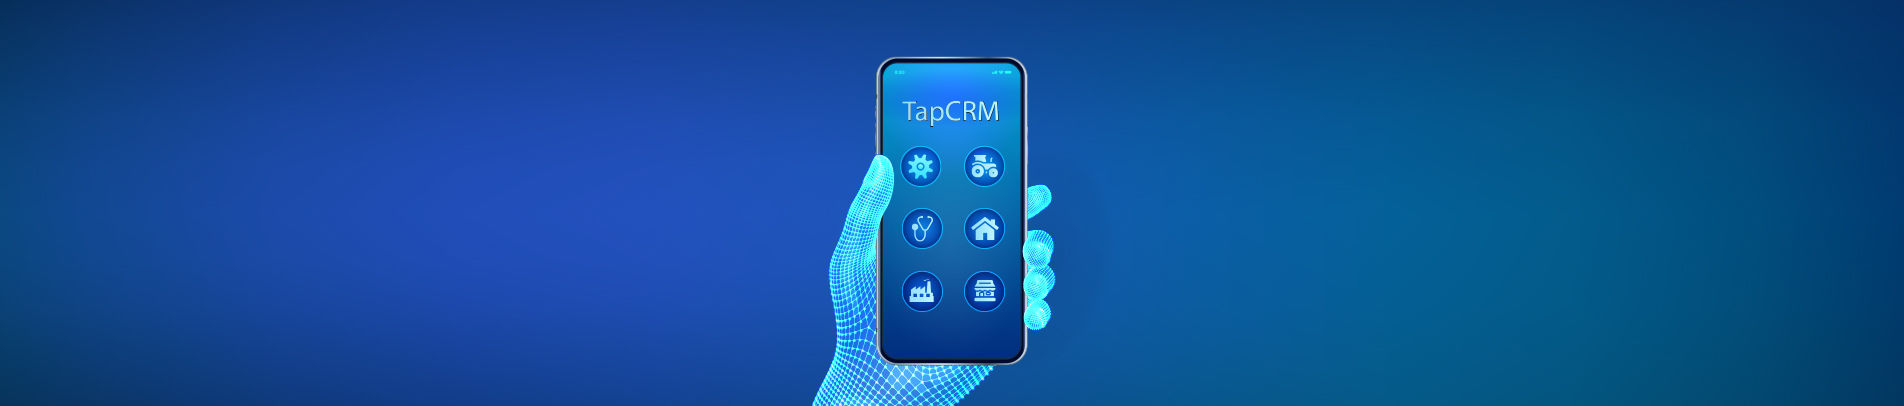 TapCRM: How These 6 Industries Can Use It